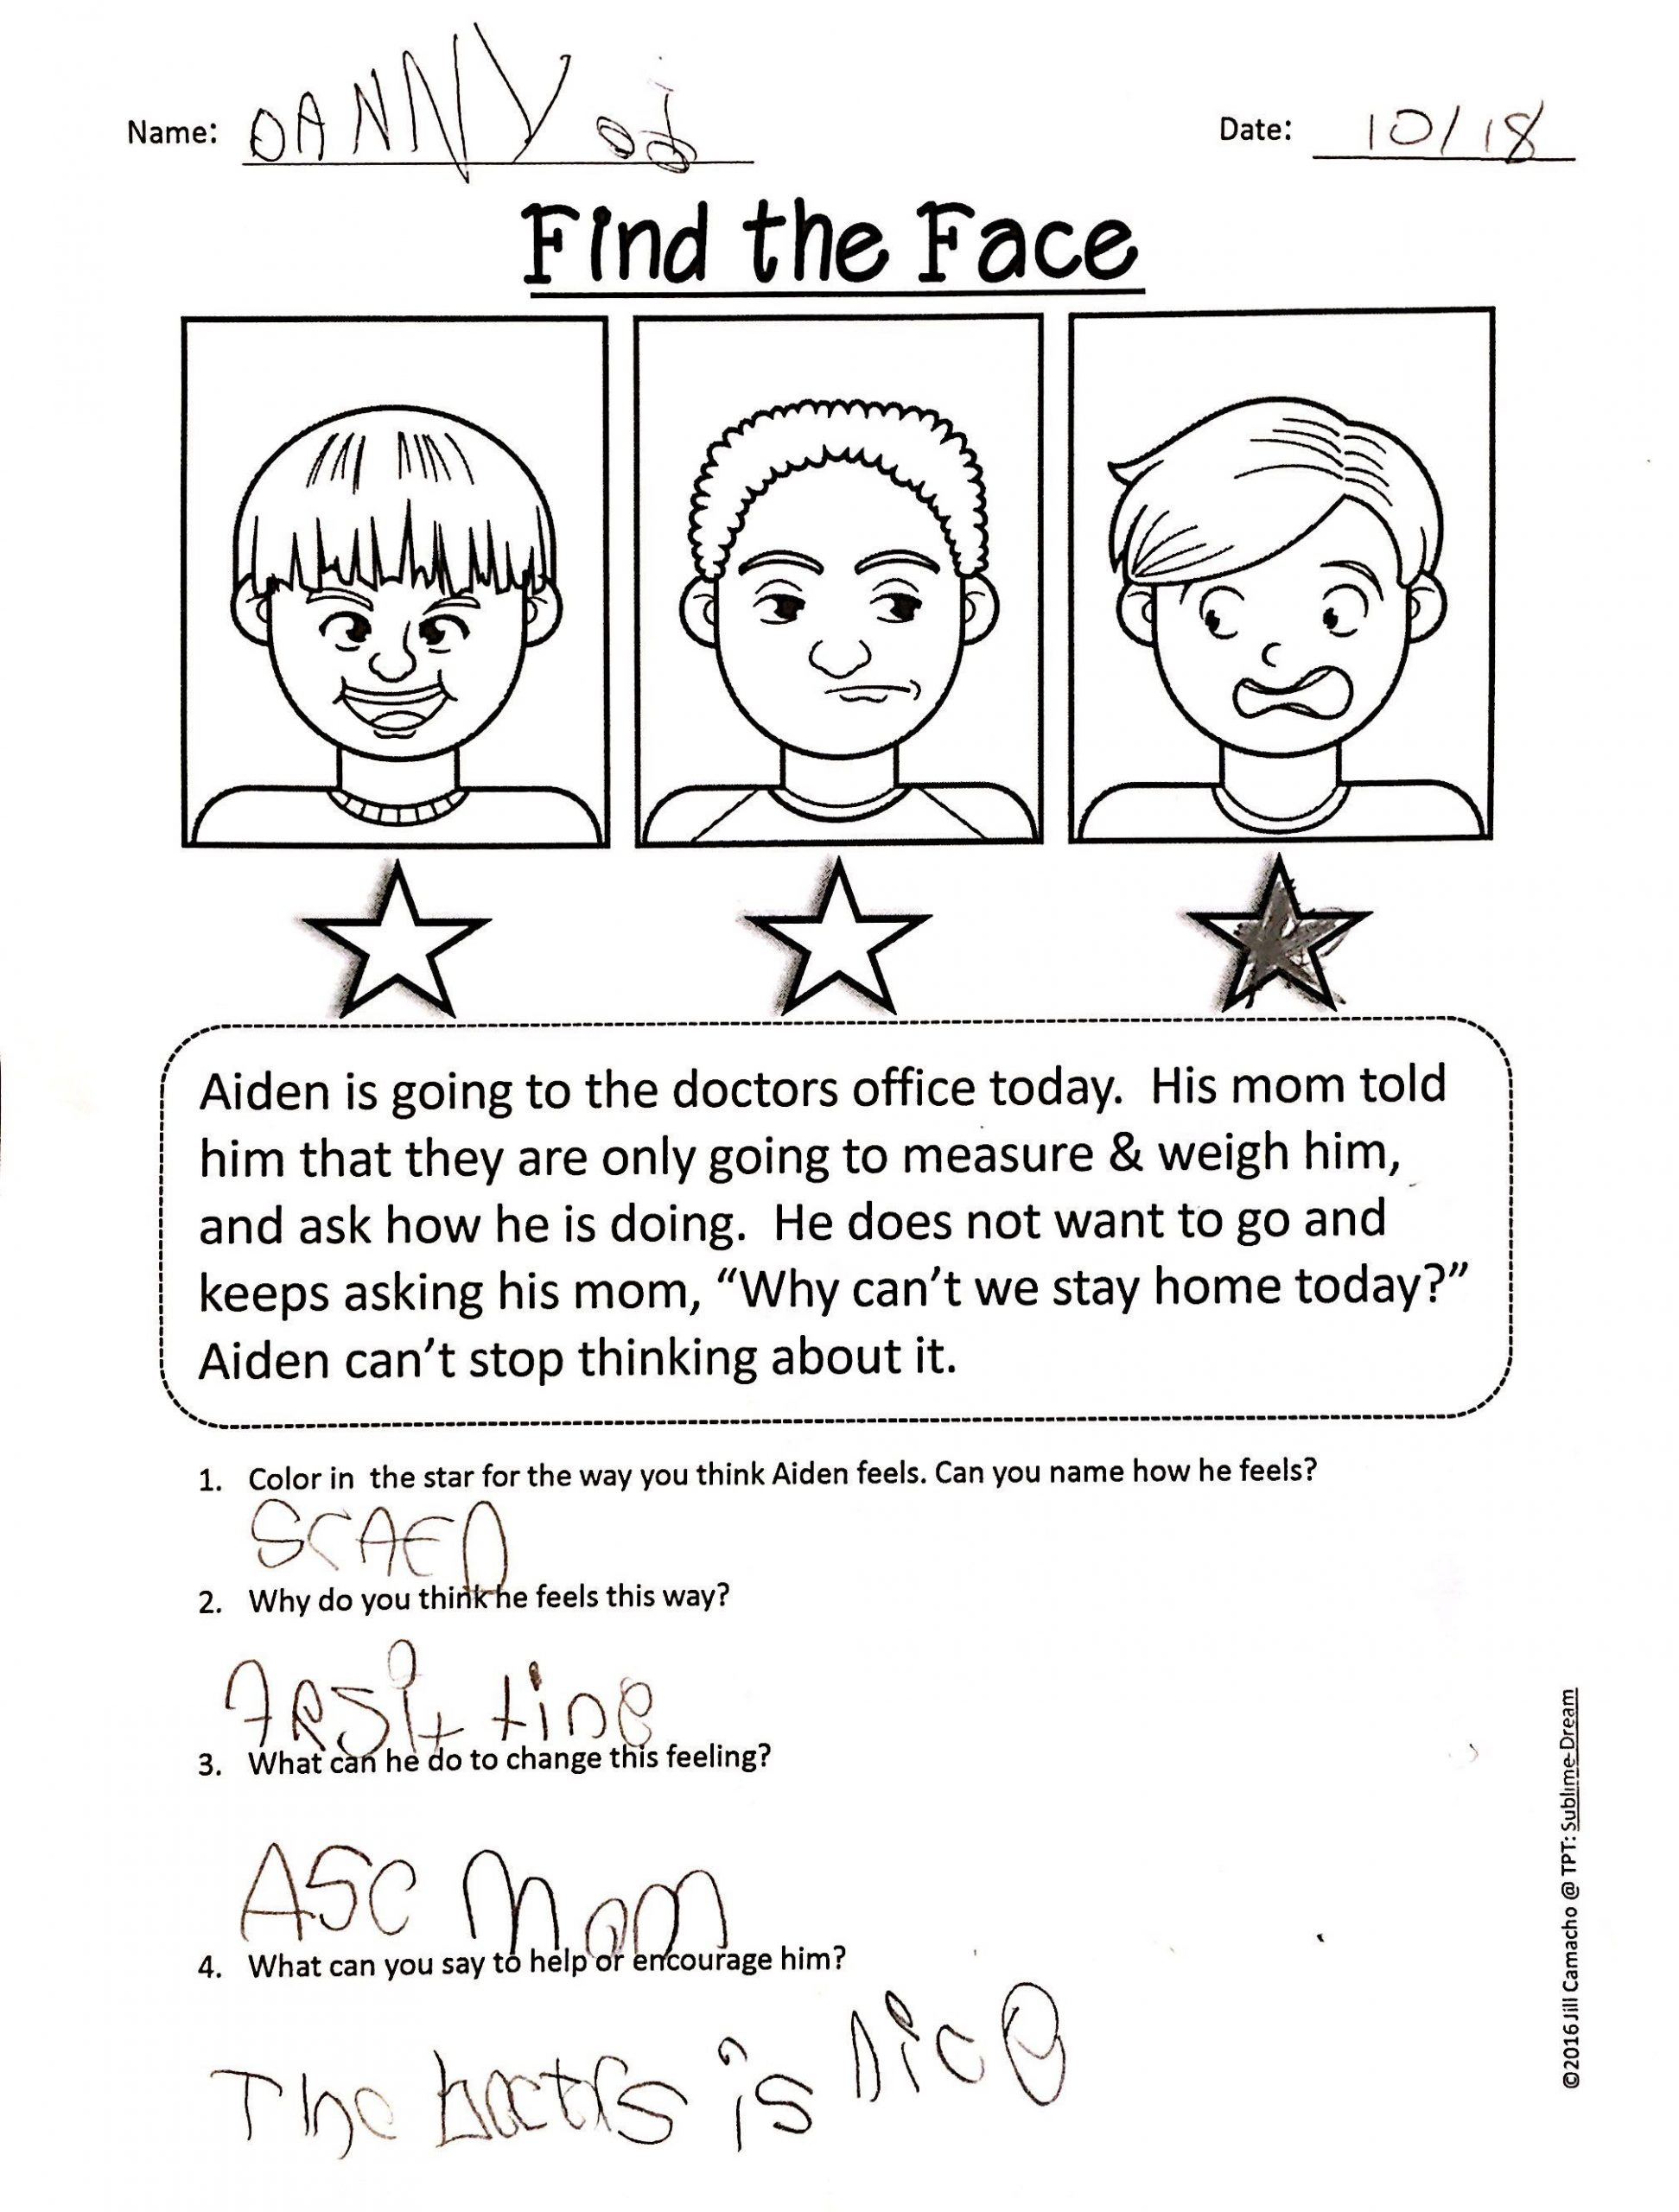 Social Skills Worksheets for Autism Printable Worksheets to Help Your Students Practice